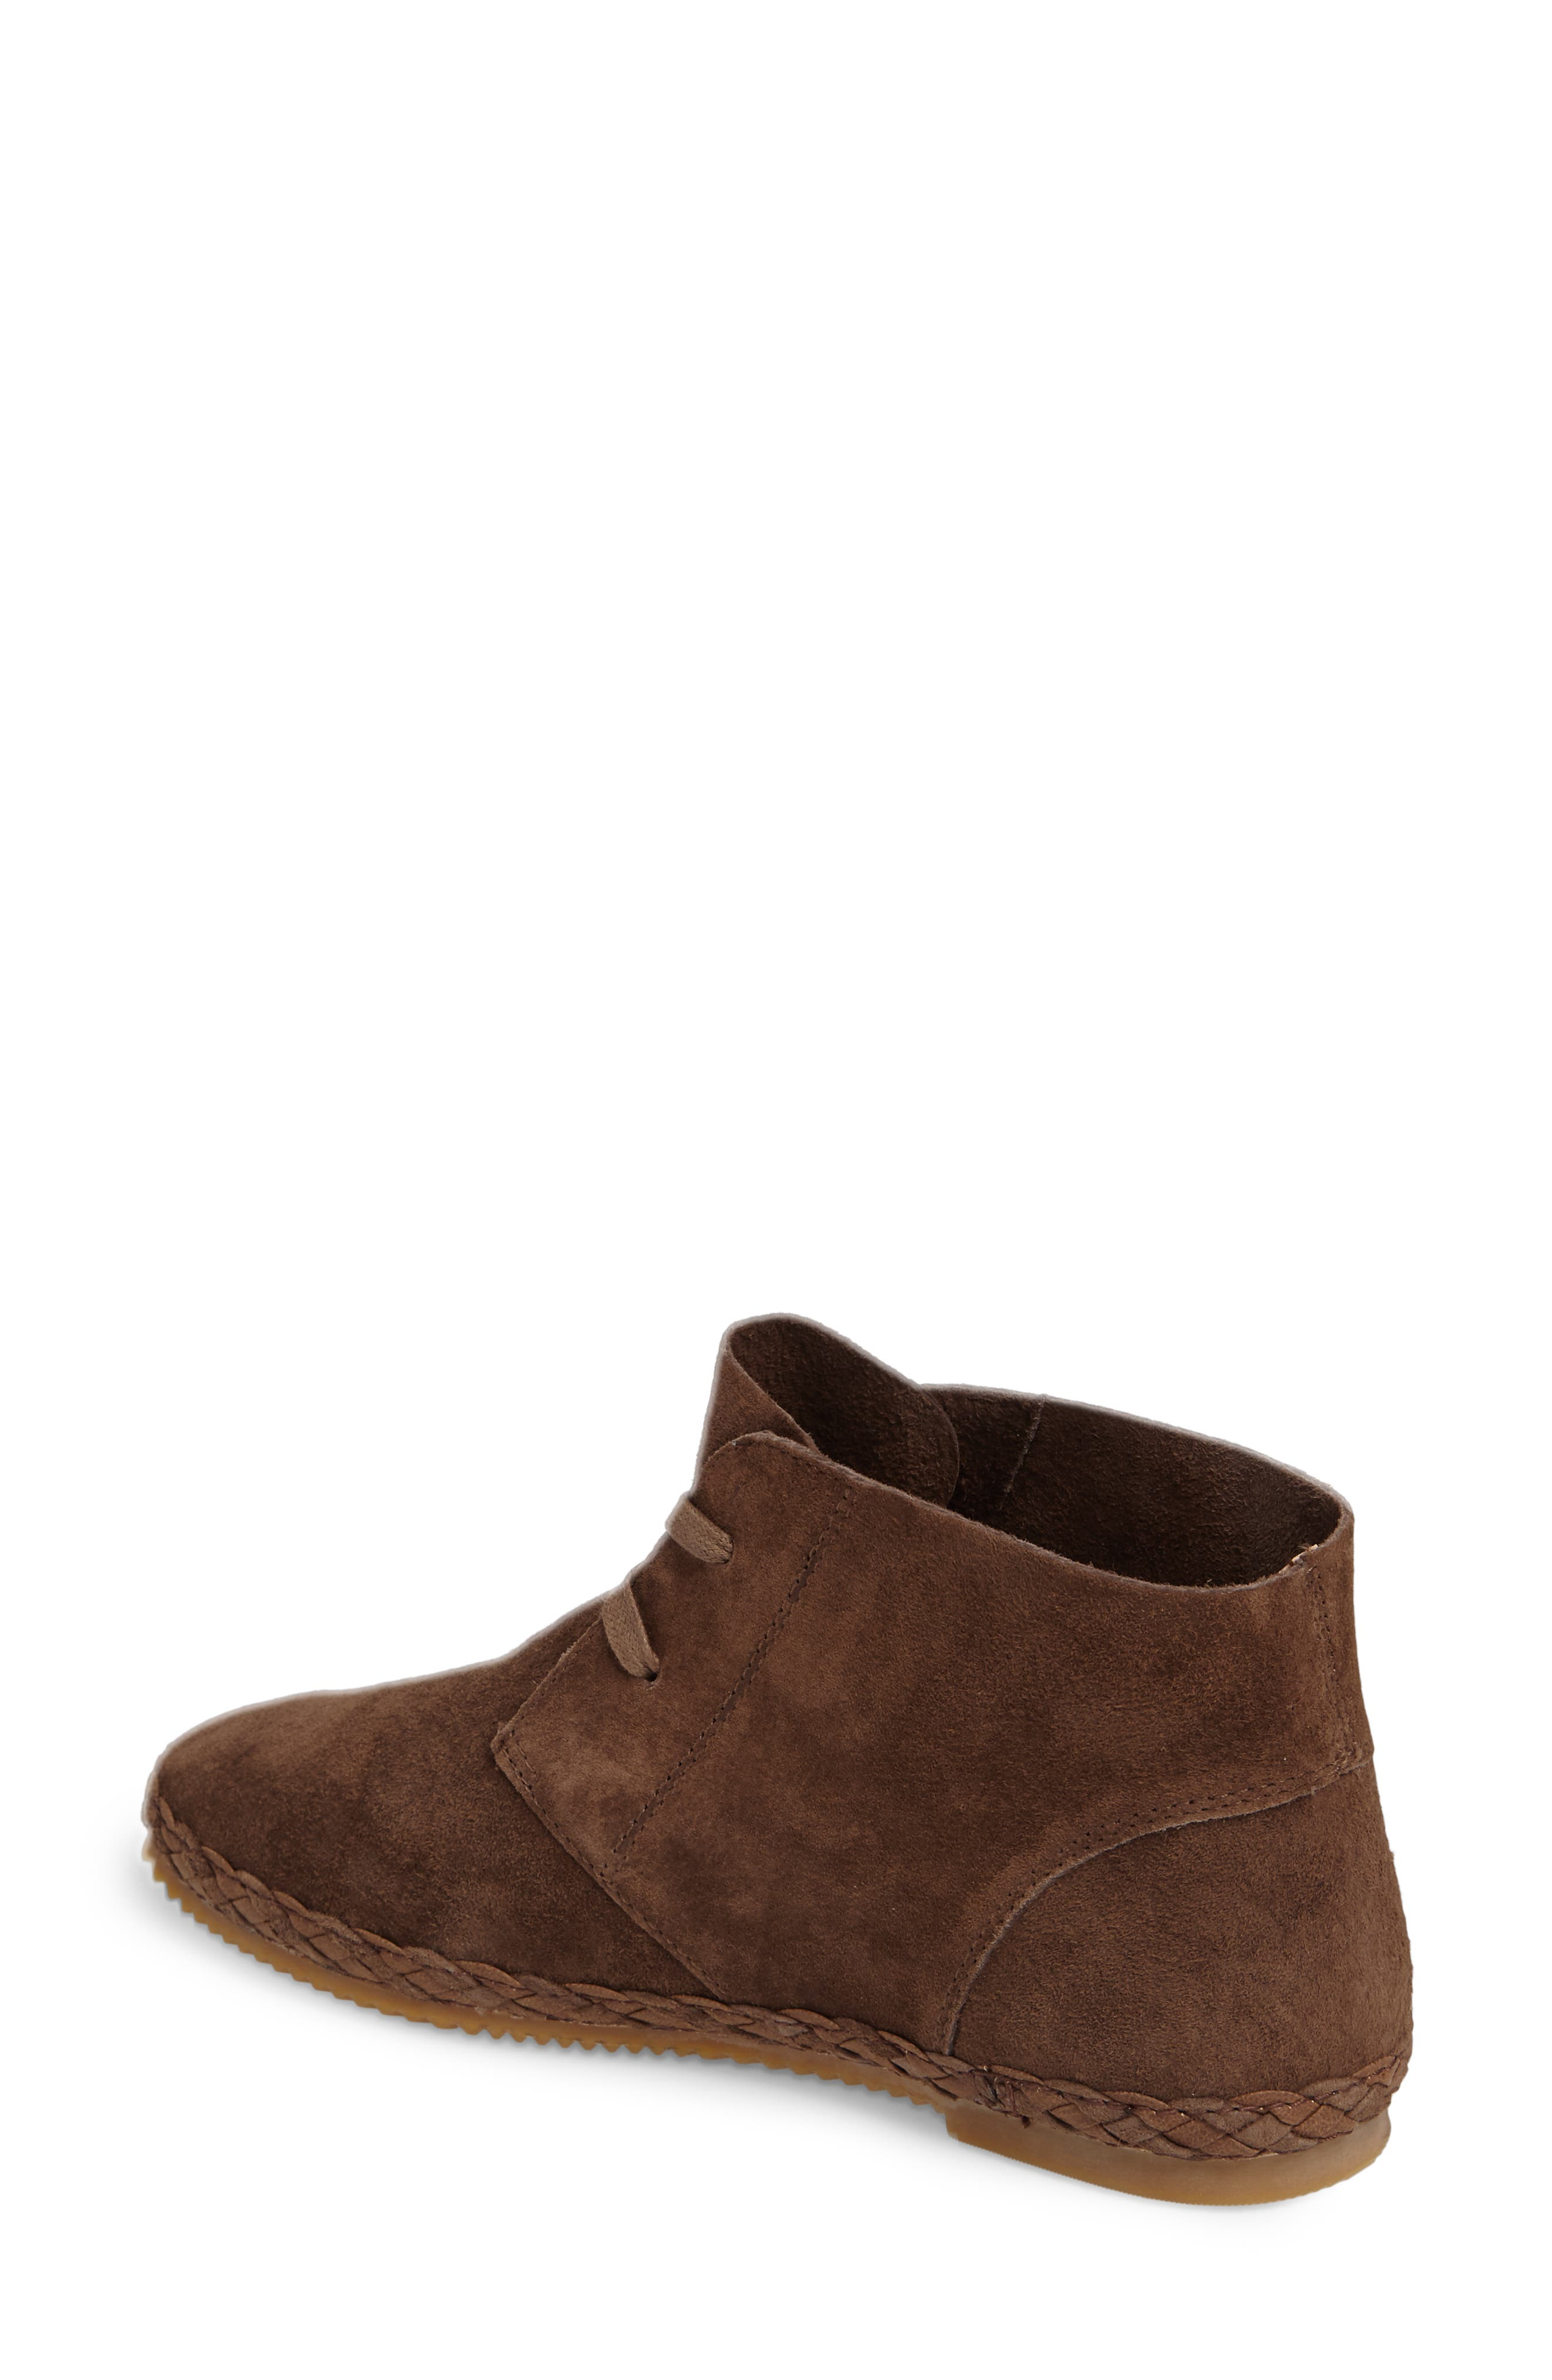 Addison Bootie,                             Alternate thumbnail 2, color,                             BROWN SUEDE